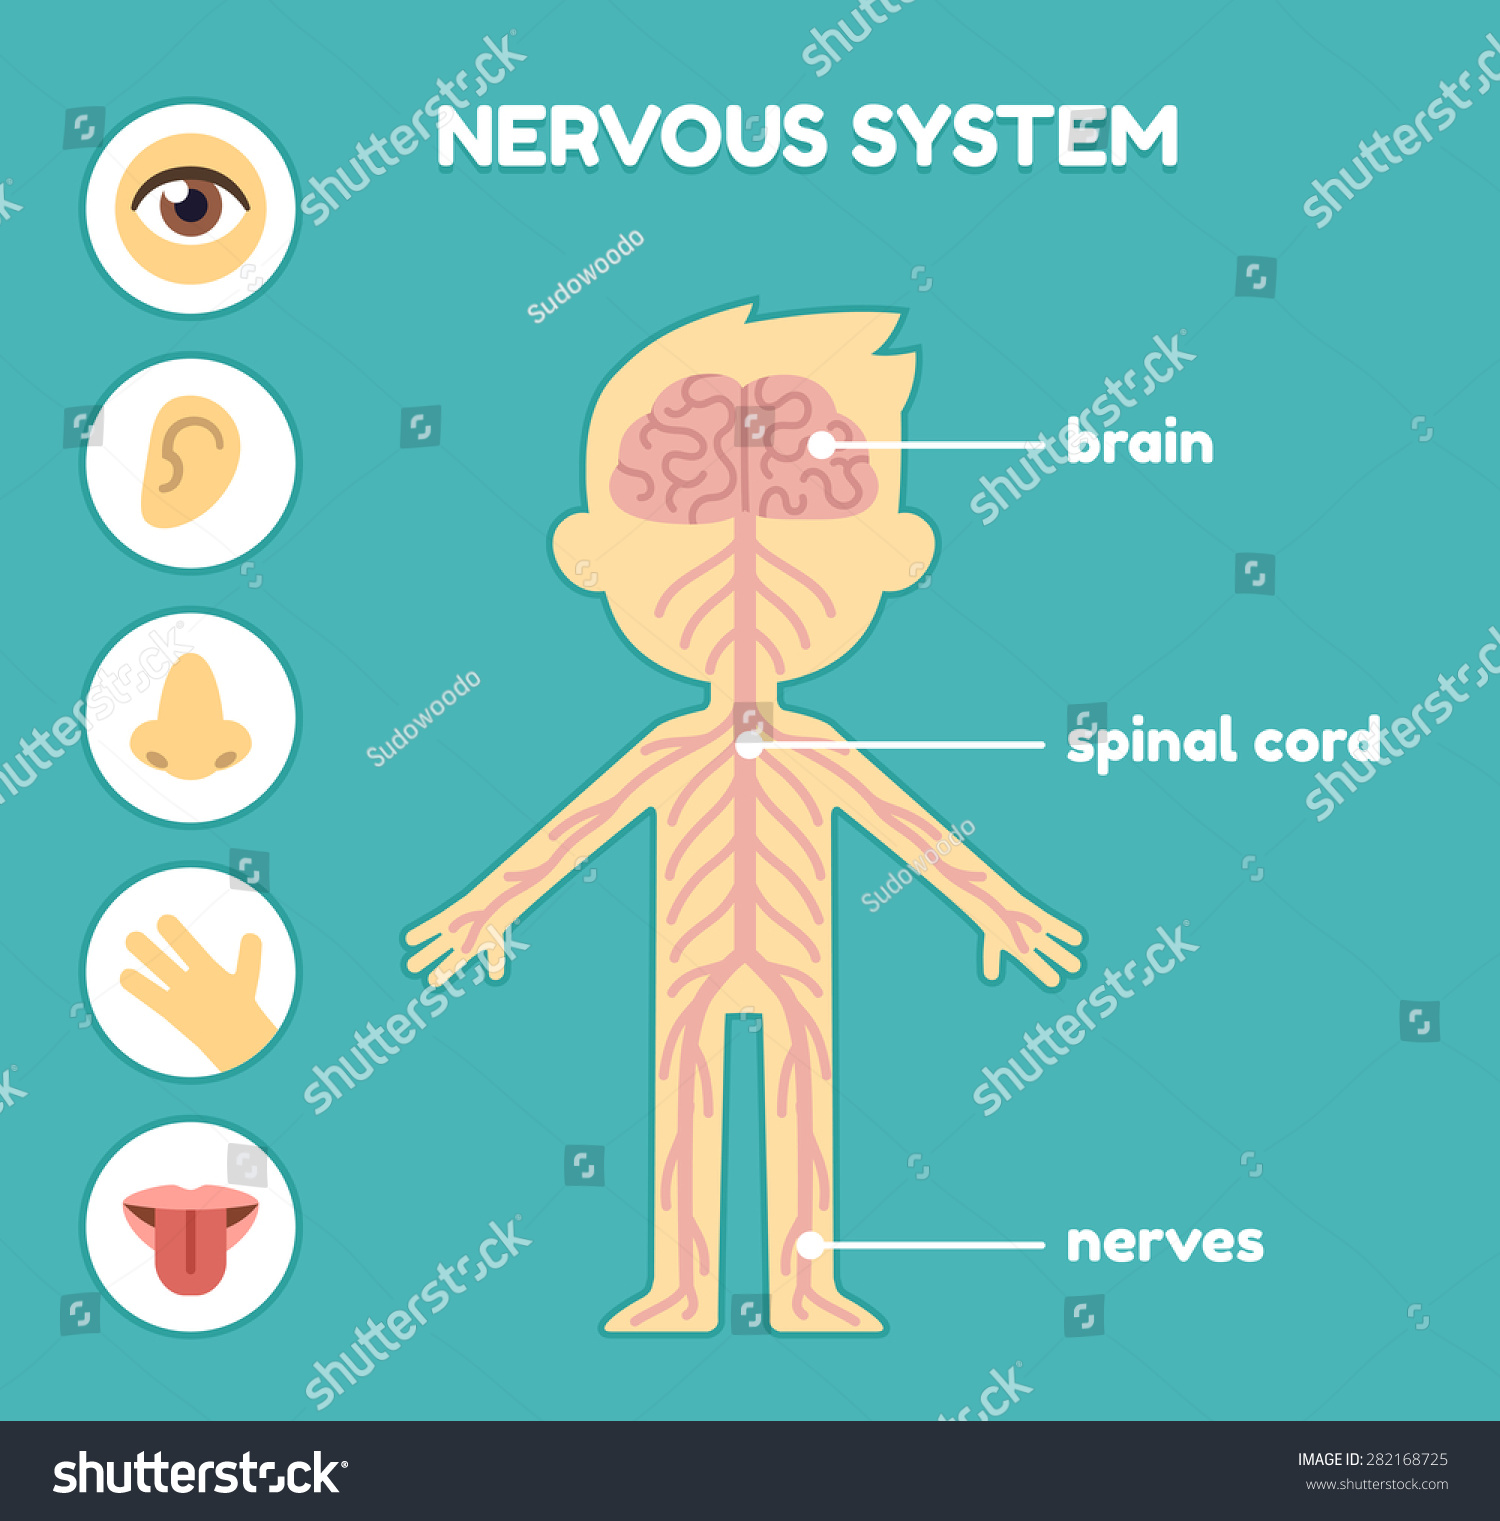 Nervous System Educational Anatomy Chart Kids Stock Vector